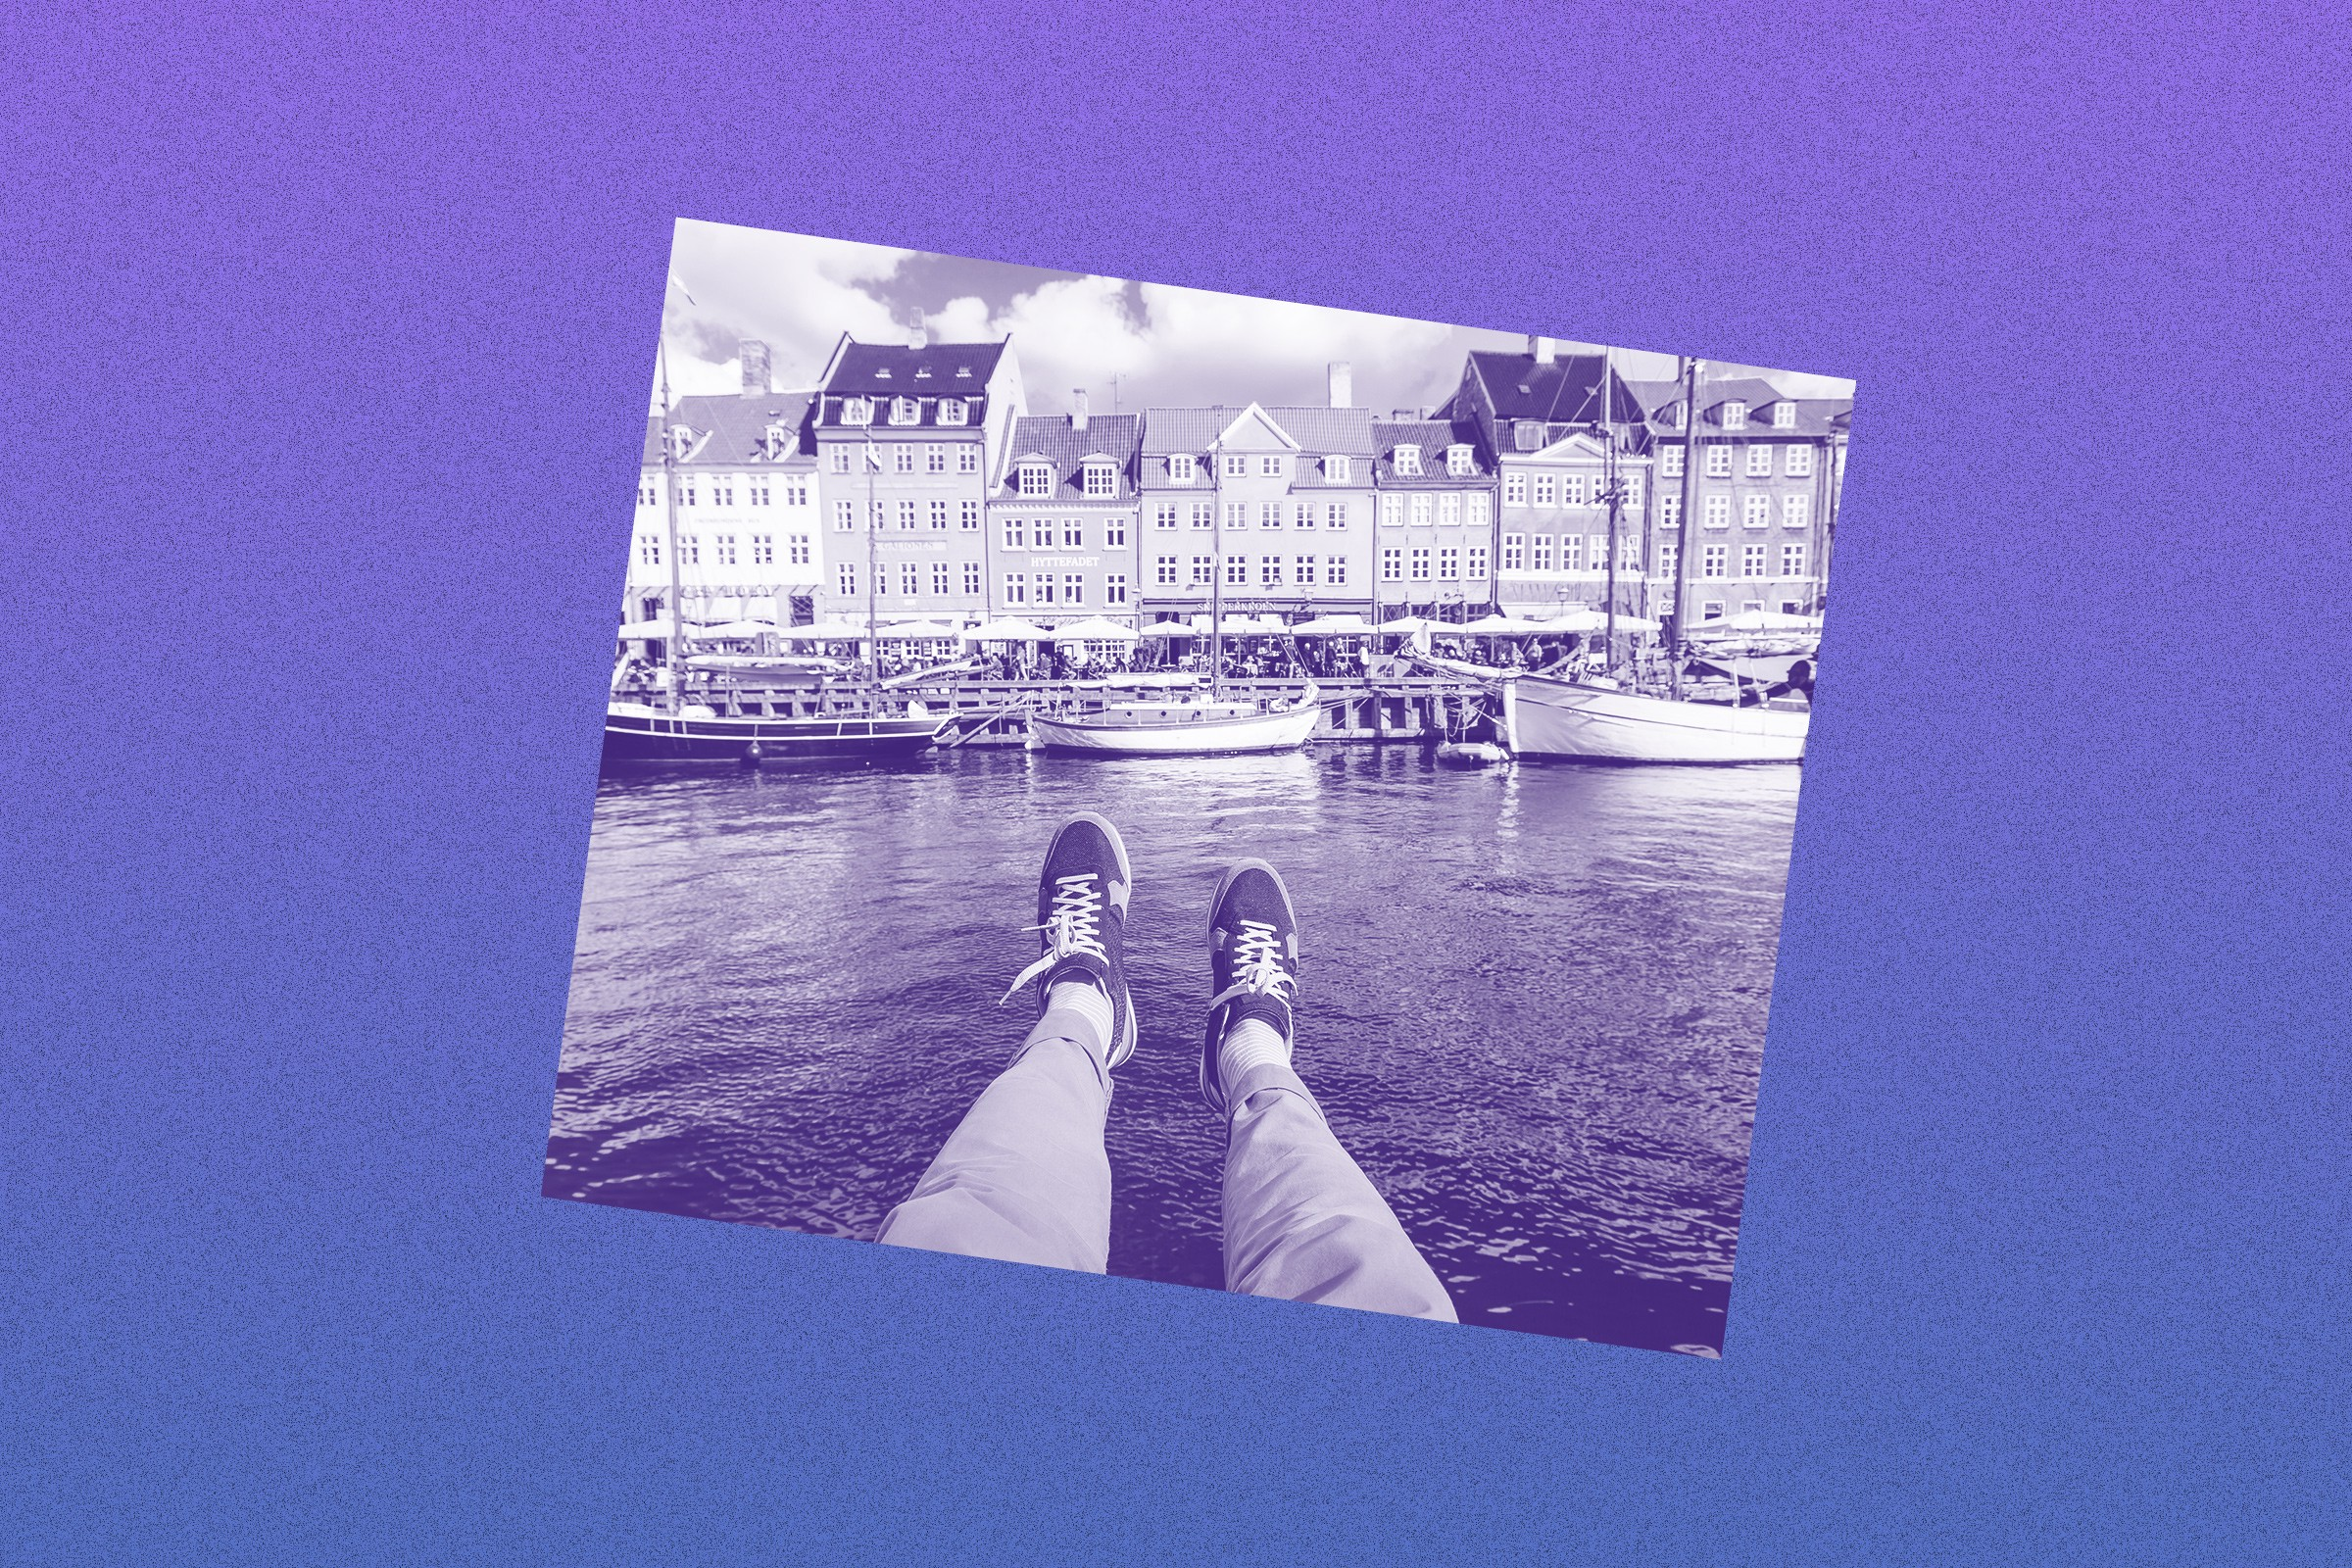 Filtered image of a person's legs dangling over water with European buildings in the background.